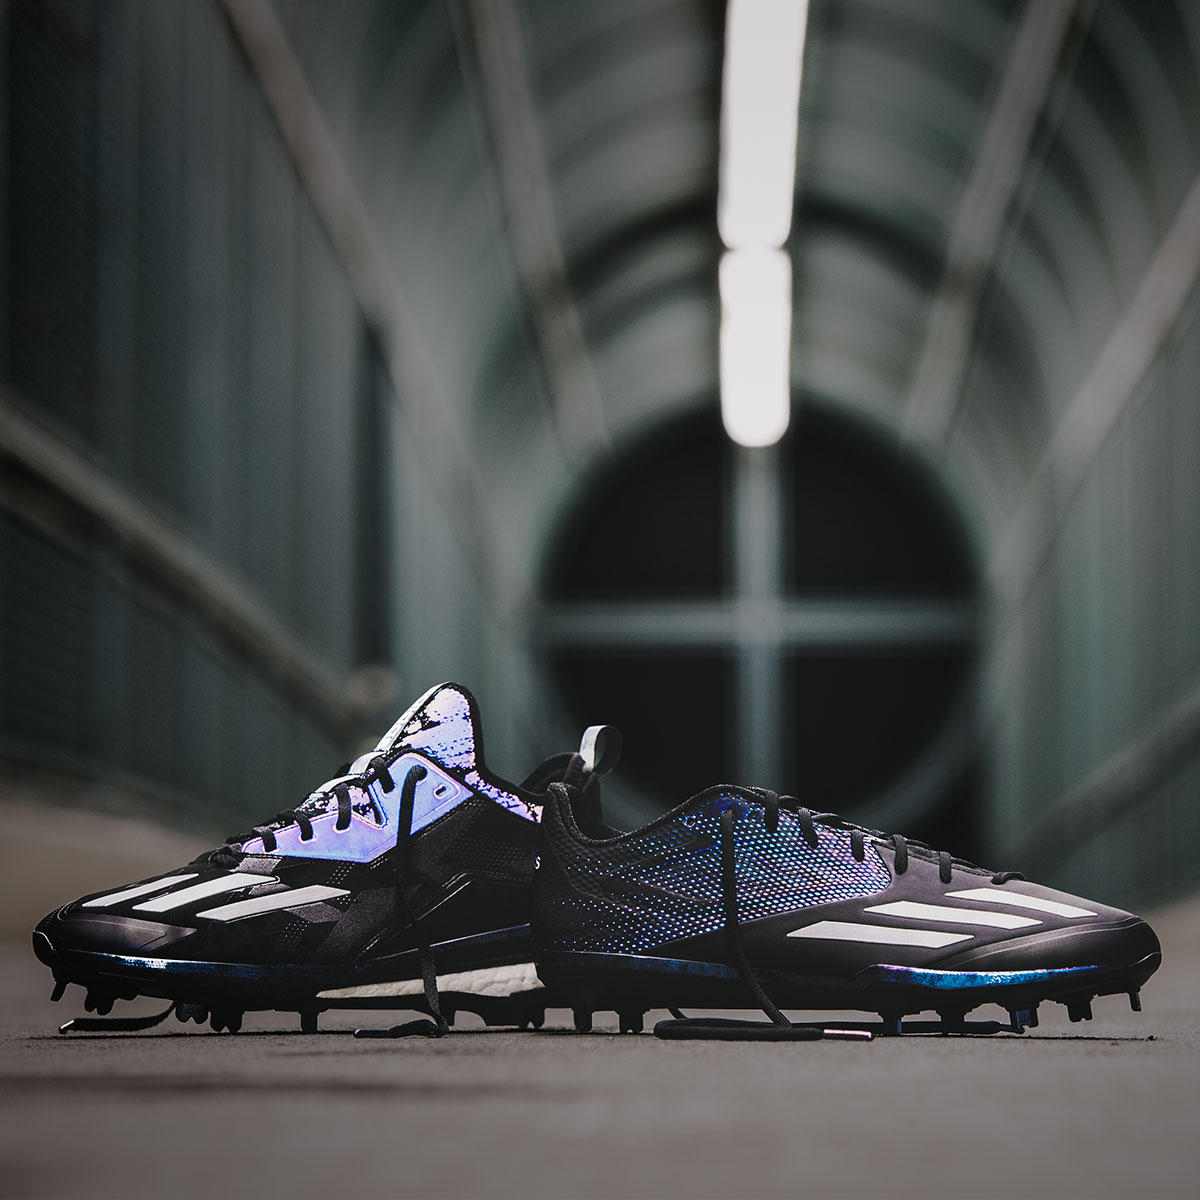 adidas_baseball_xeno_adizero-boosticon__transformation